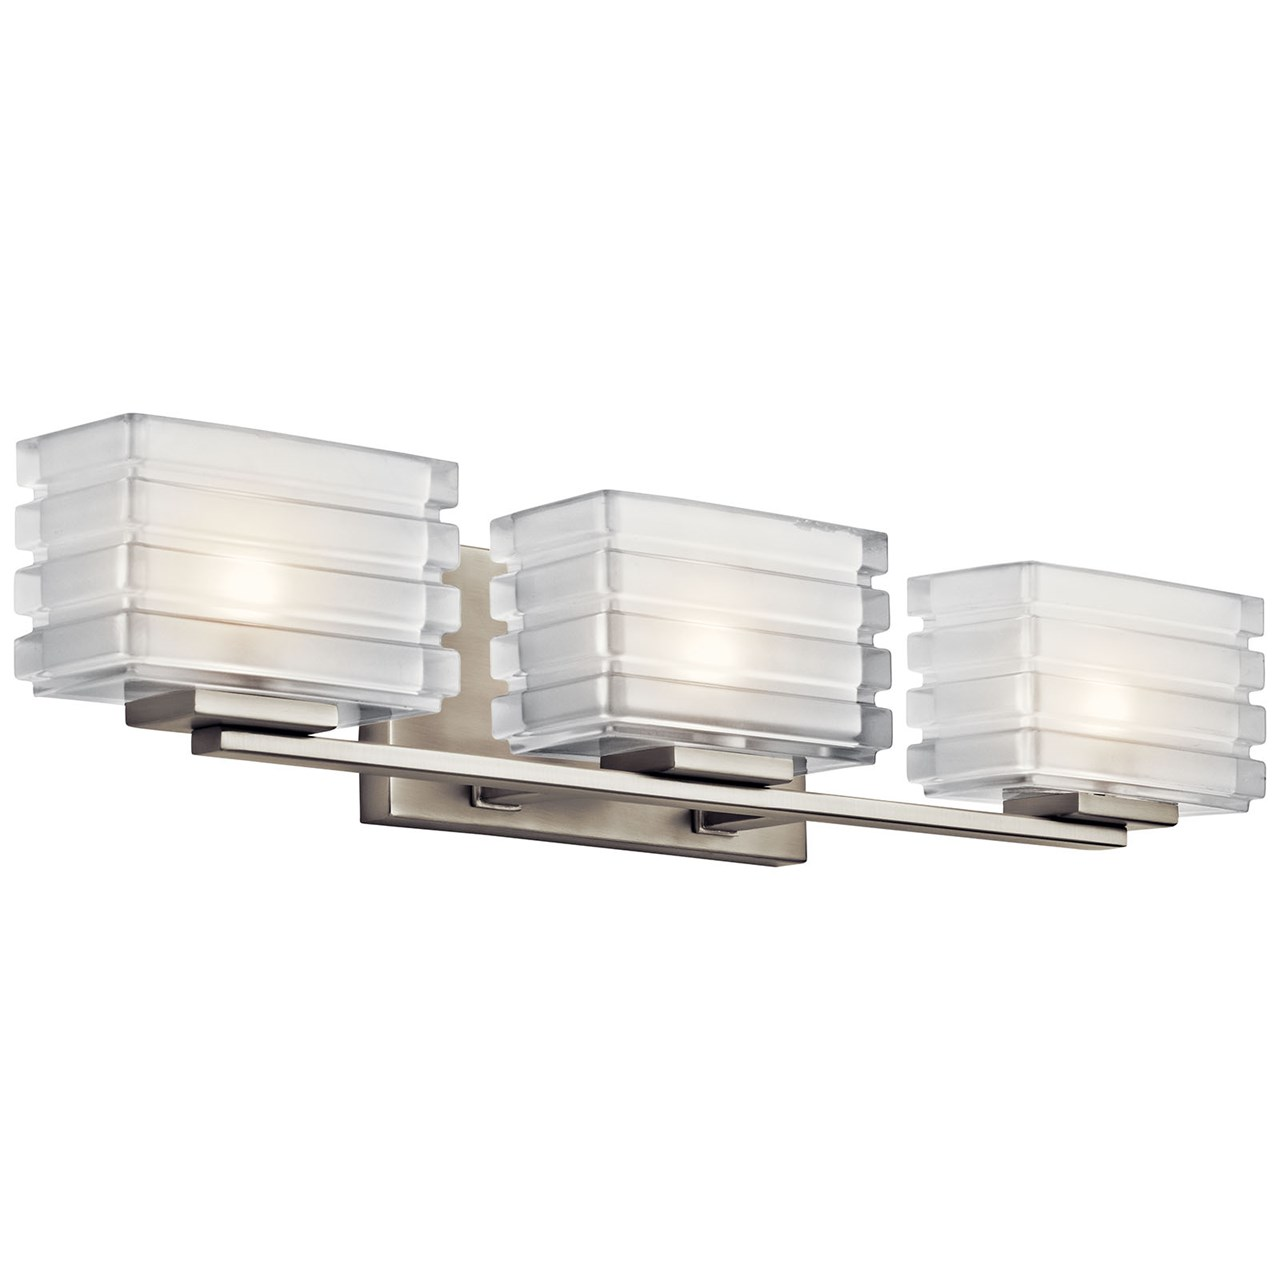 Bazely 3 Light Halogen Wall Sconce Brushed Nickel